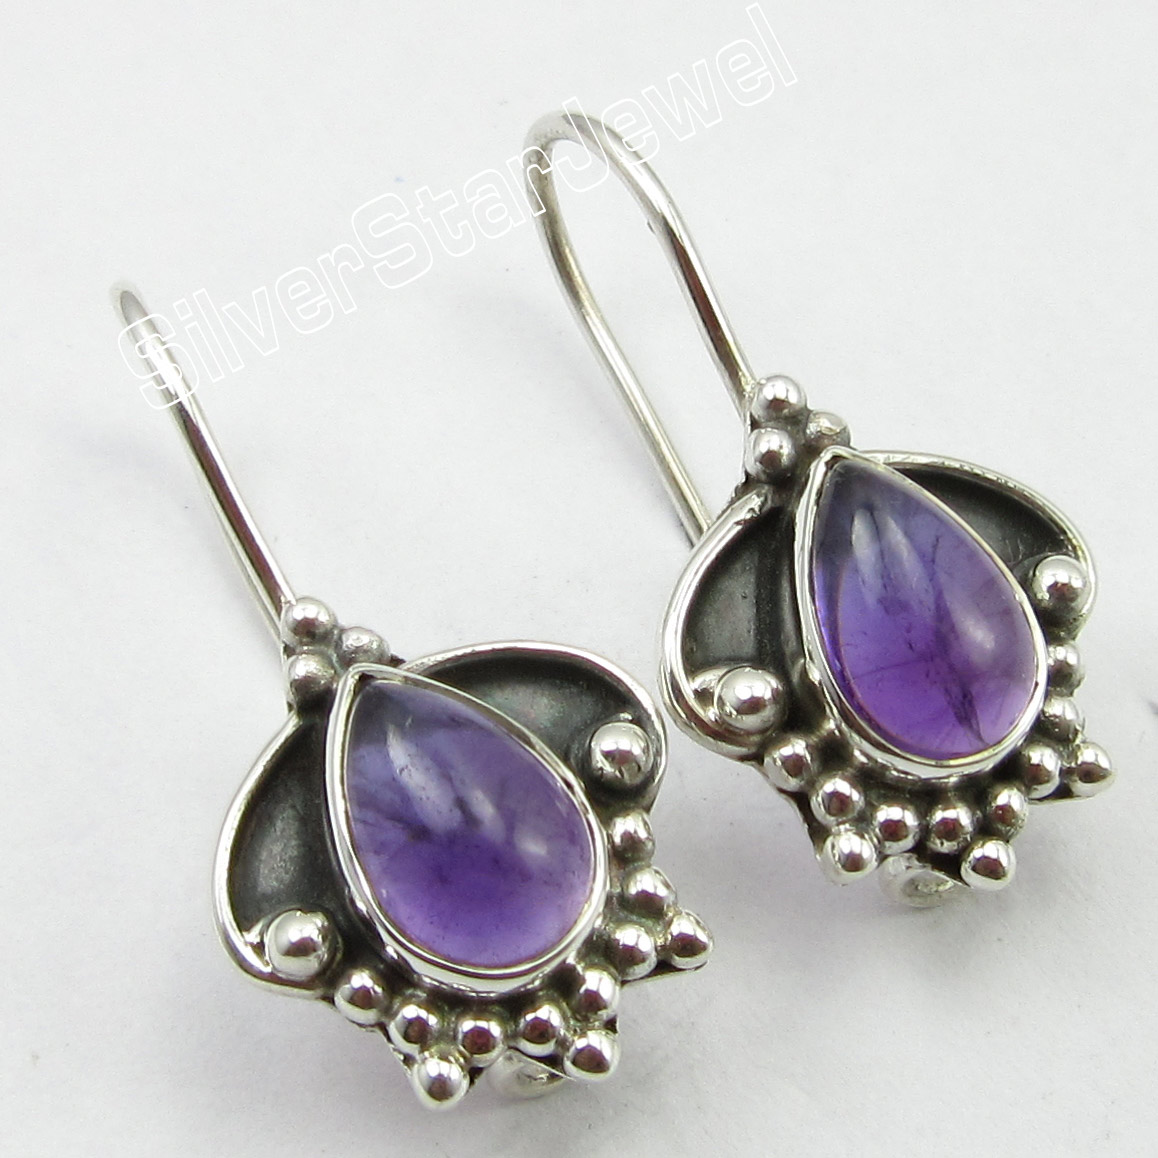 925-Sterling-Silver-Earrings-1-034-Authentic-DROP-CABOCHON-AMETHYST-Jewelry